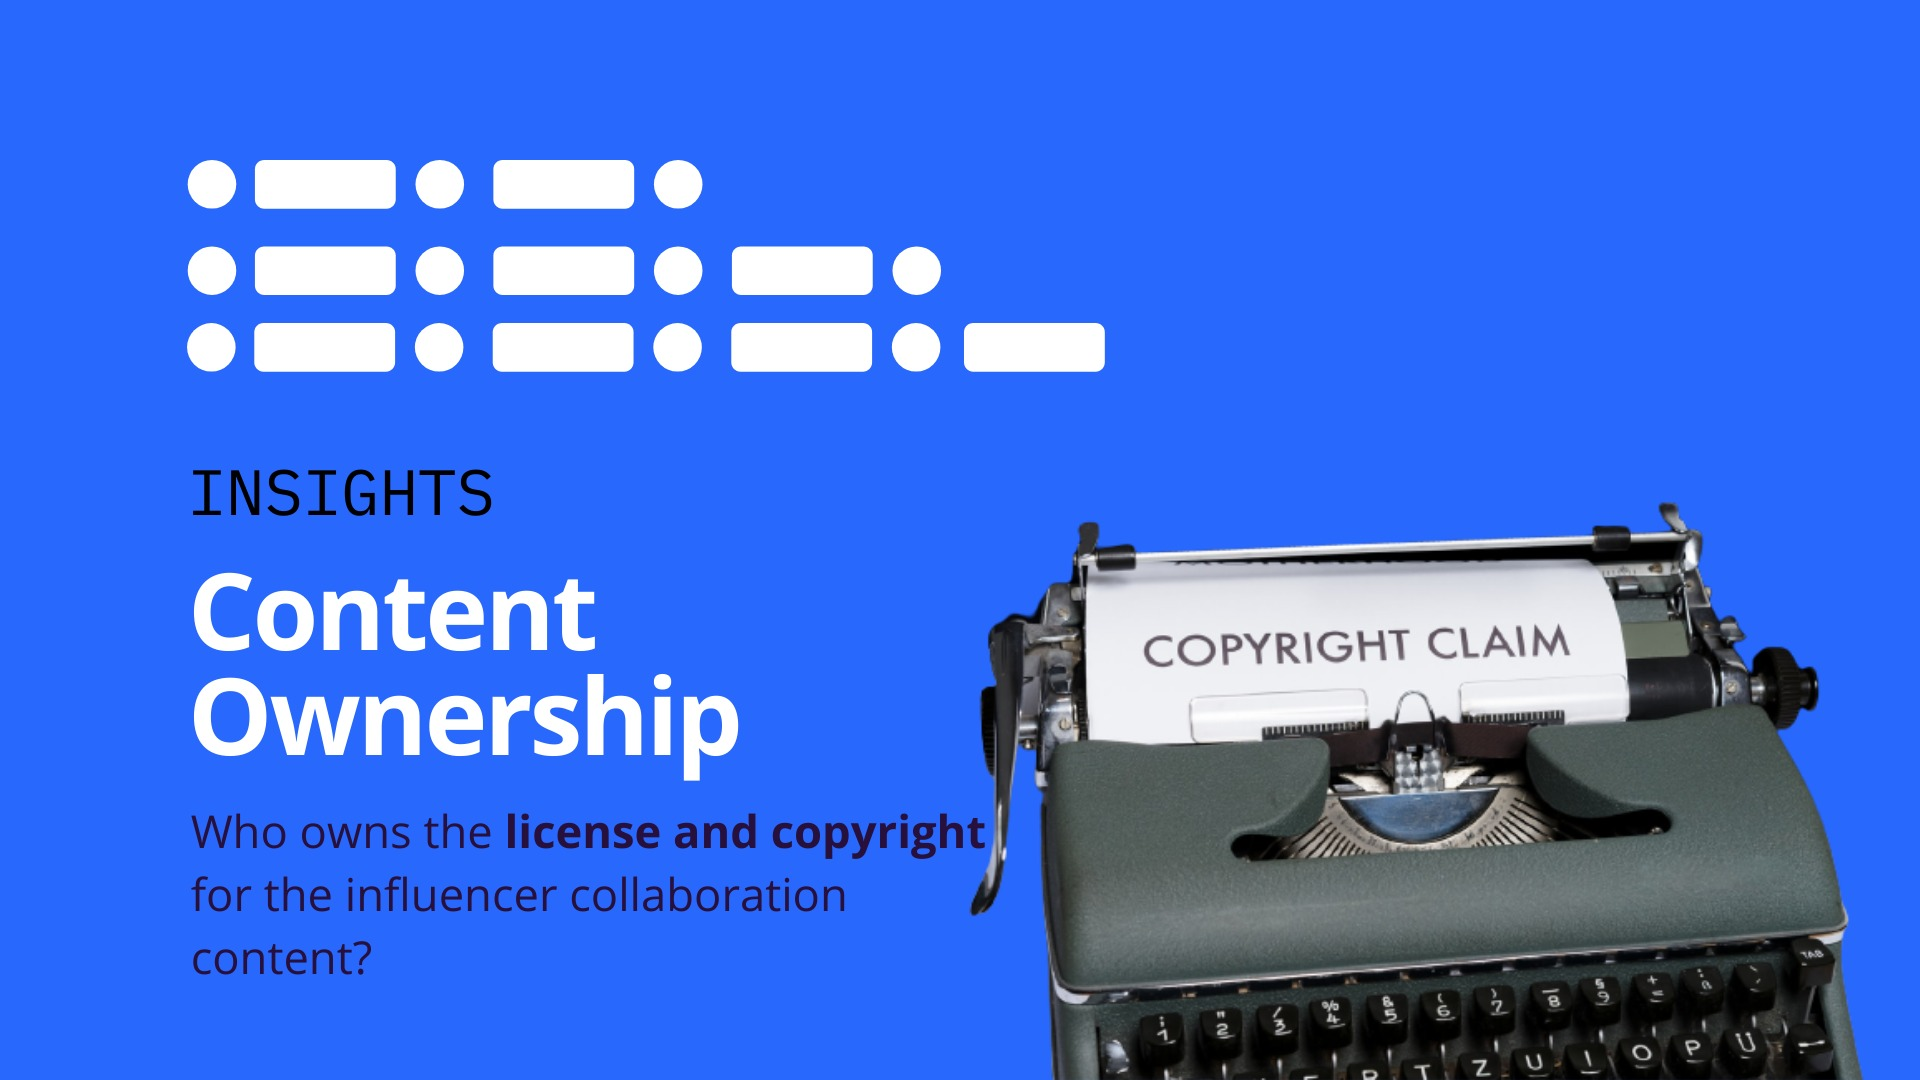 Who owns the license and copyright for the influencer collaboration content? image